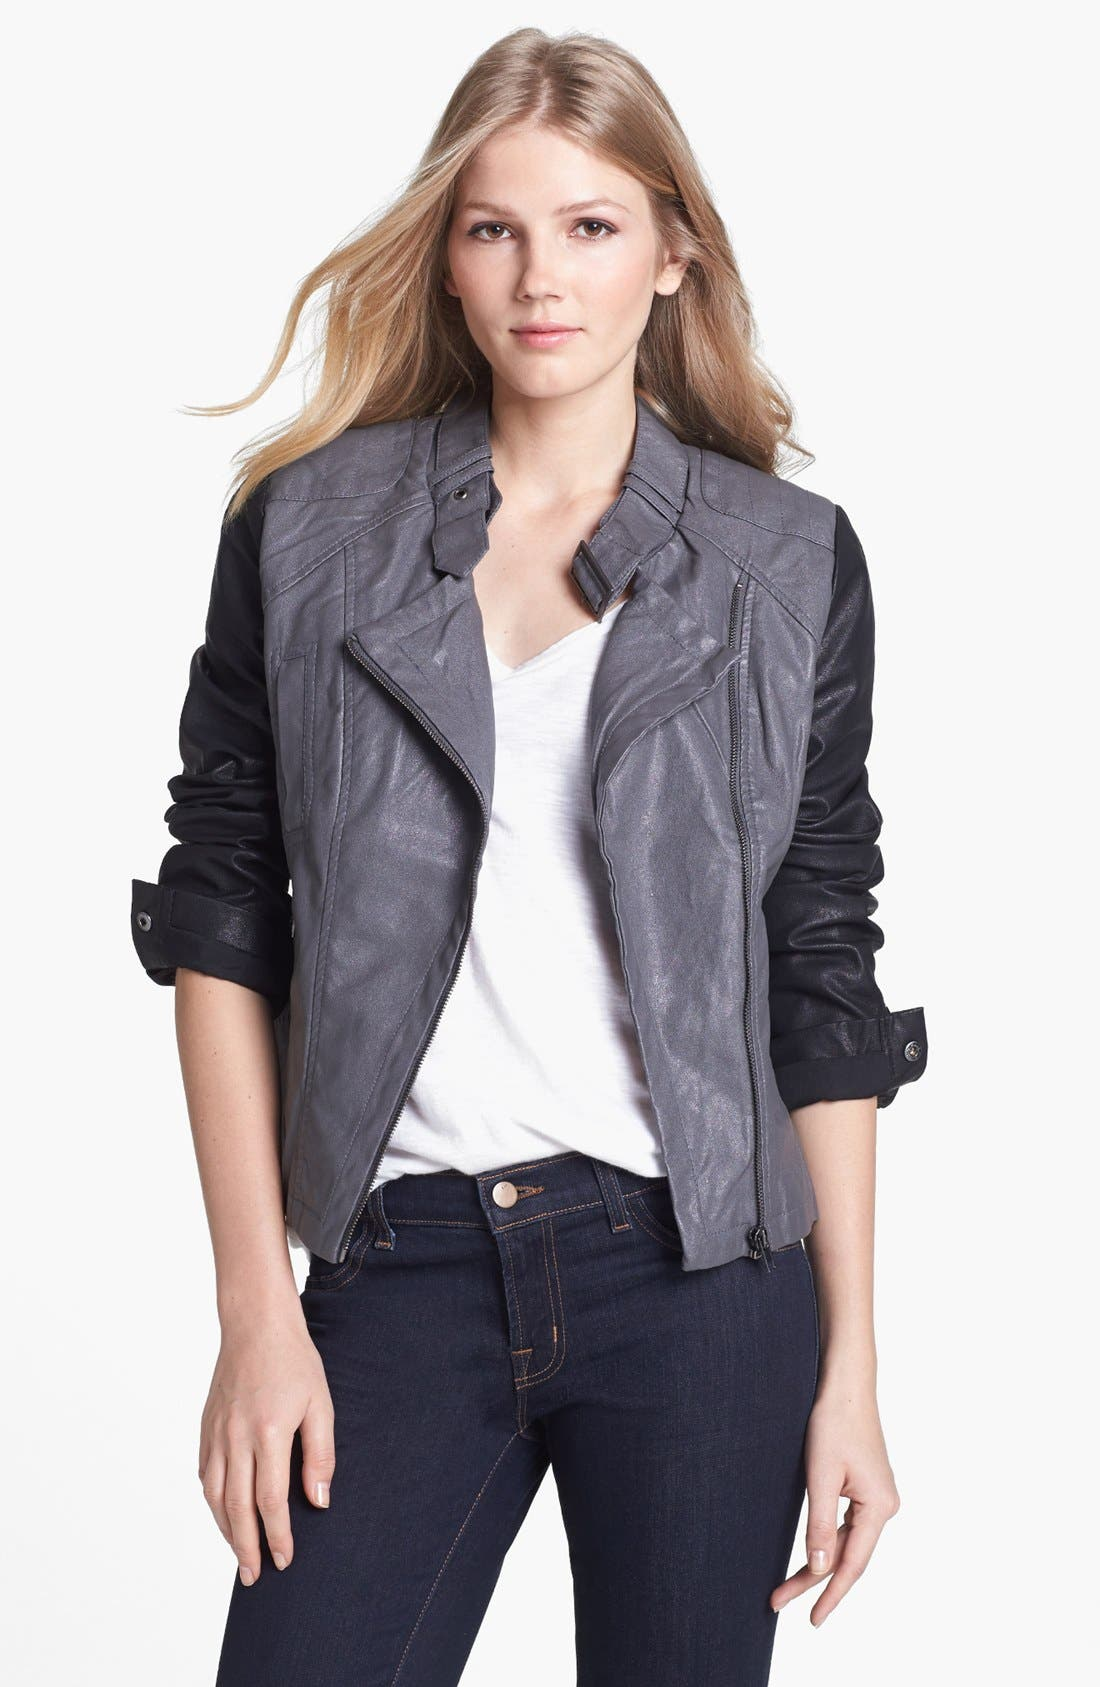 Alternate Image 1 Selected - KUT from the Kloth Contrast Sleeve Faux Leather Jacket